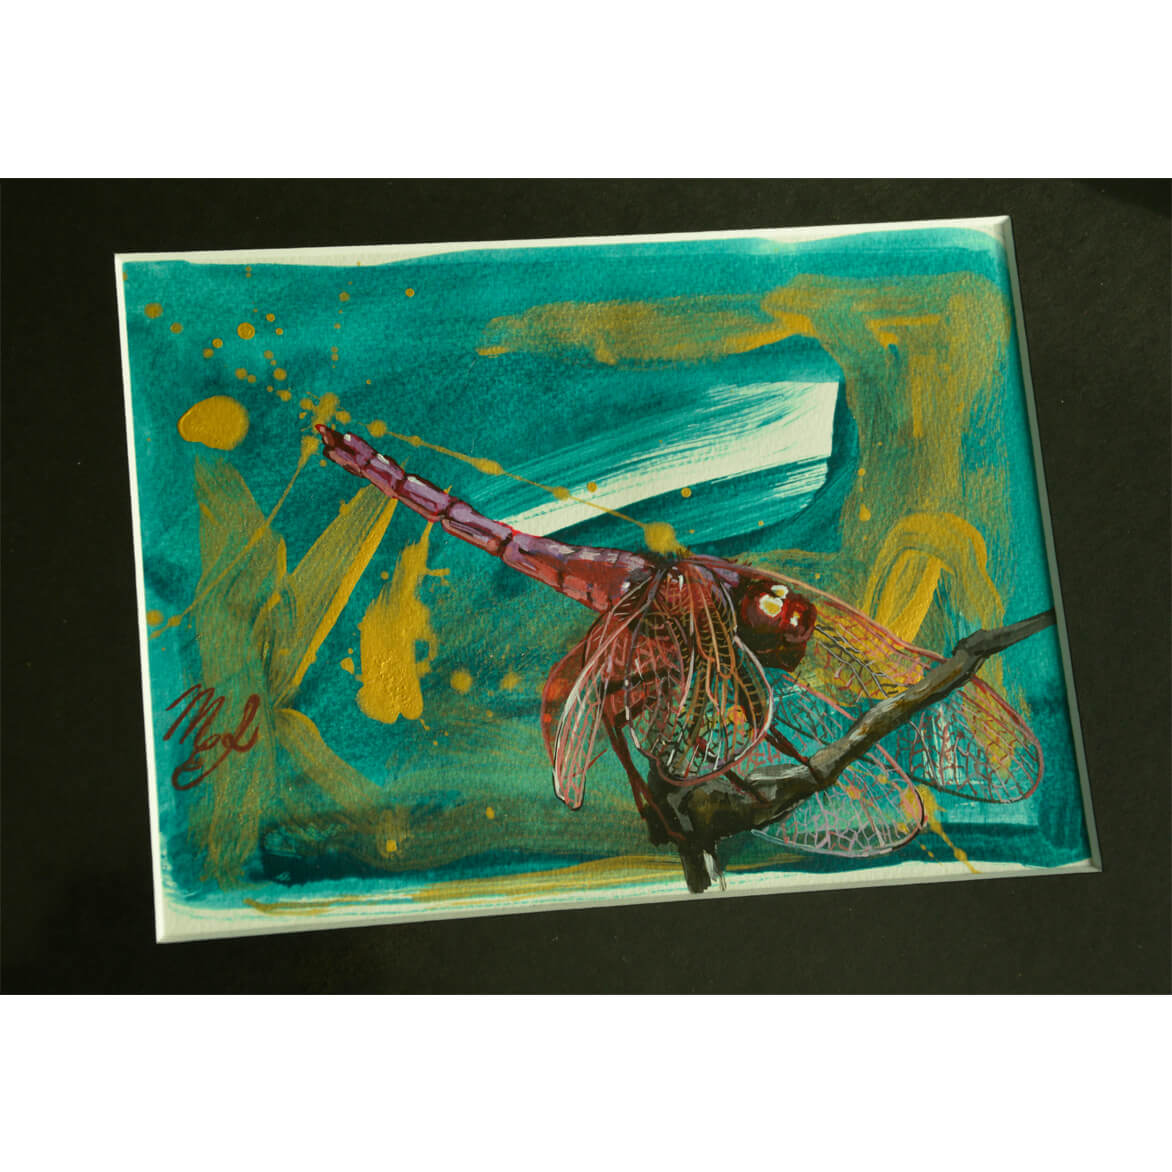 Acrylic painting on paper depicting a dragonfly.